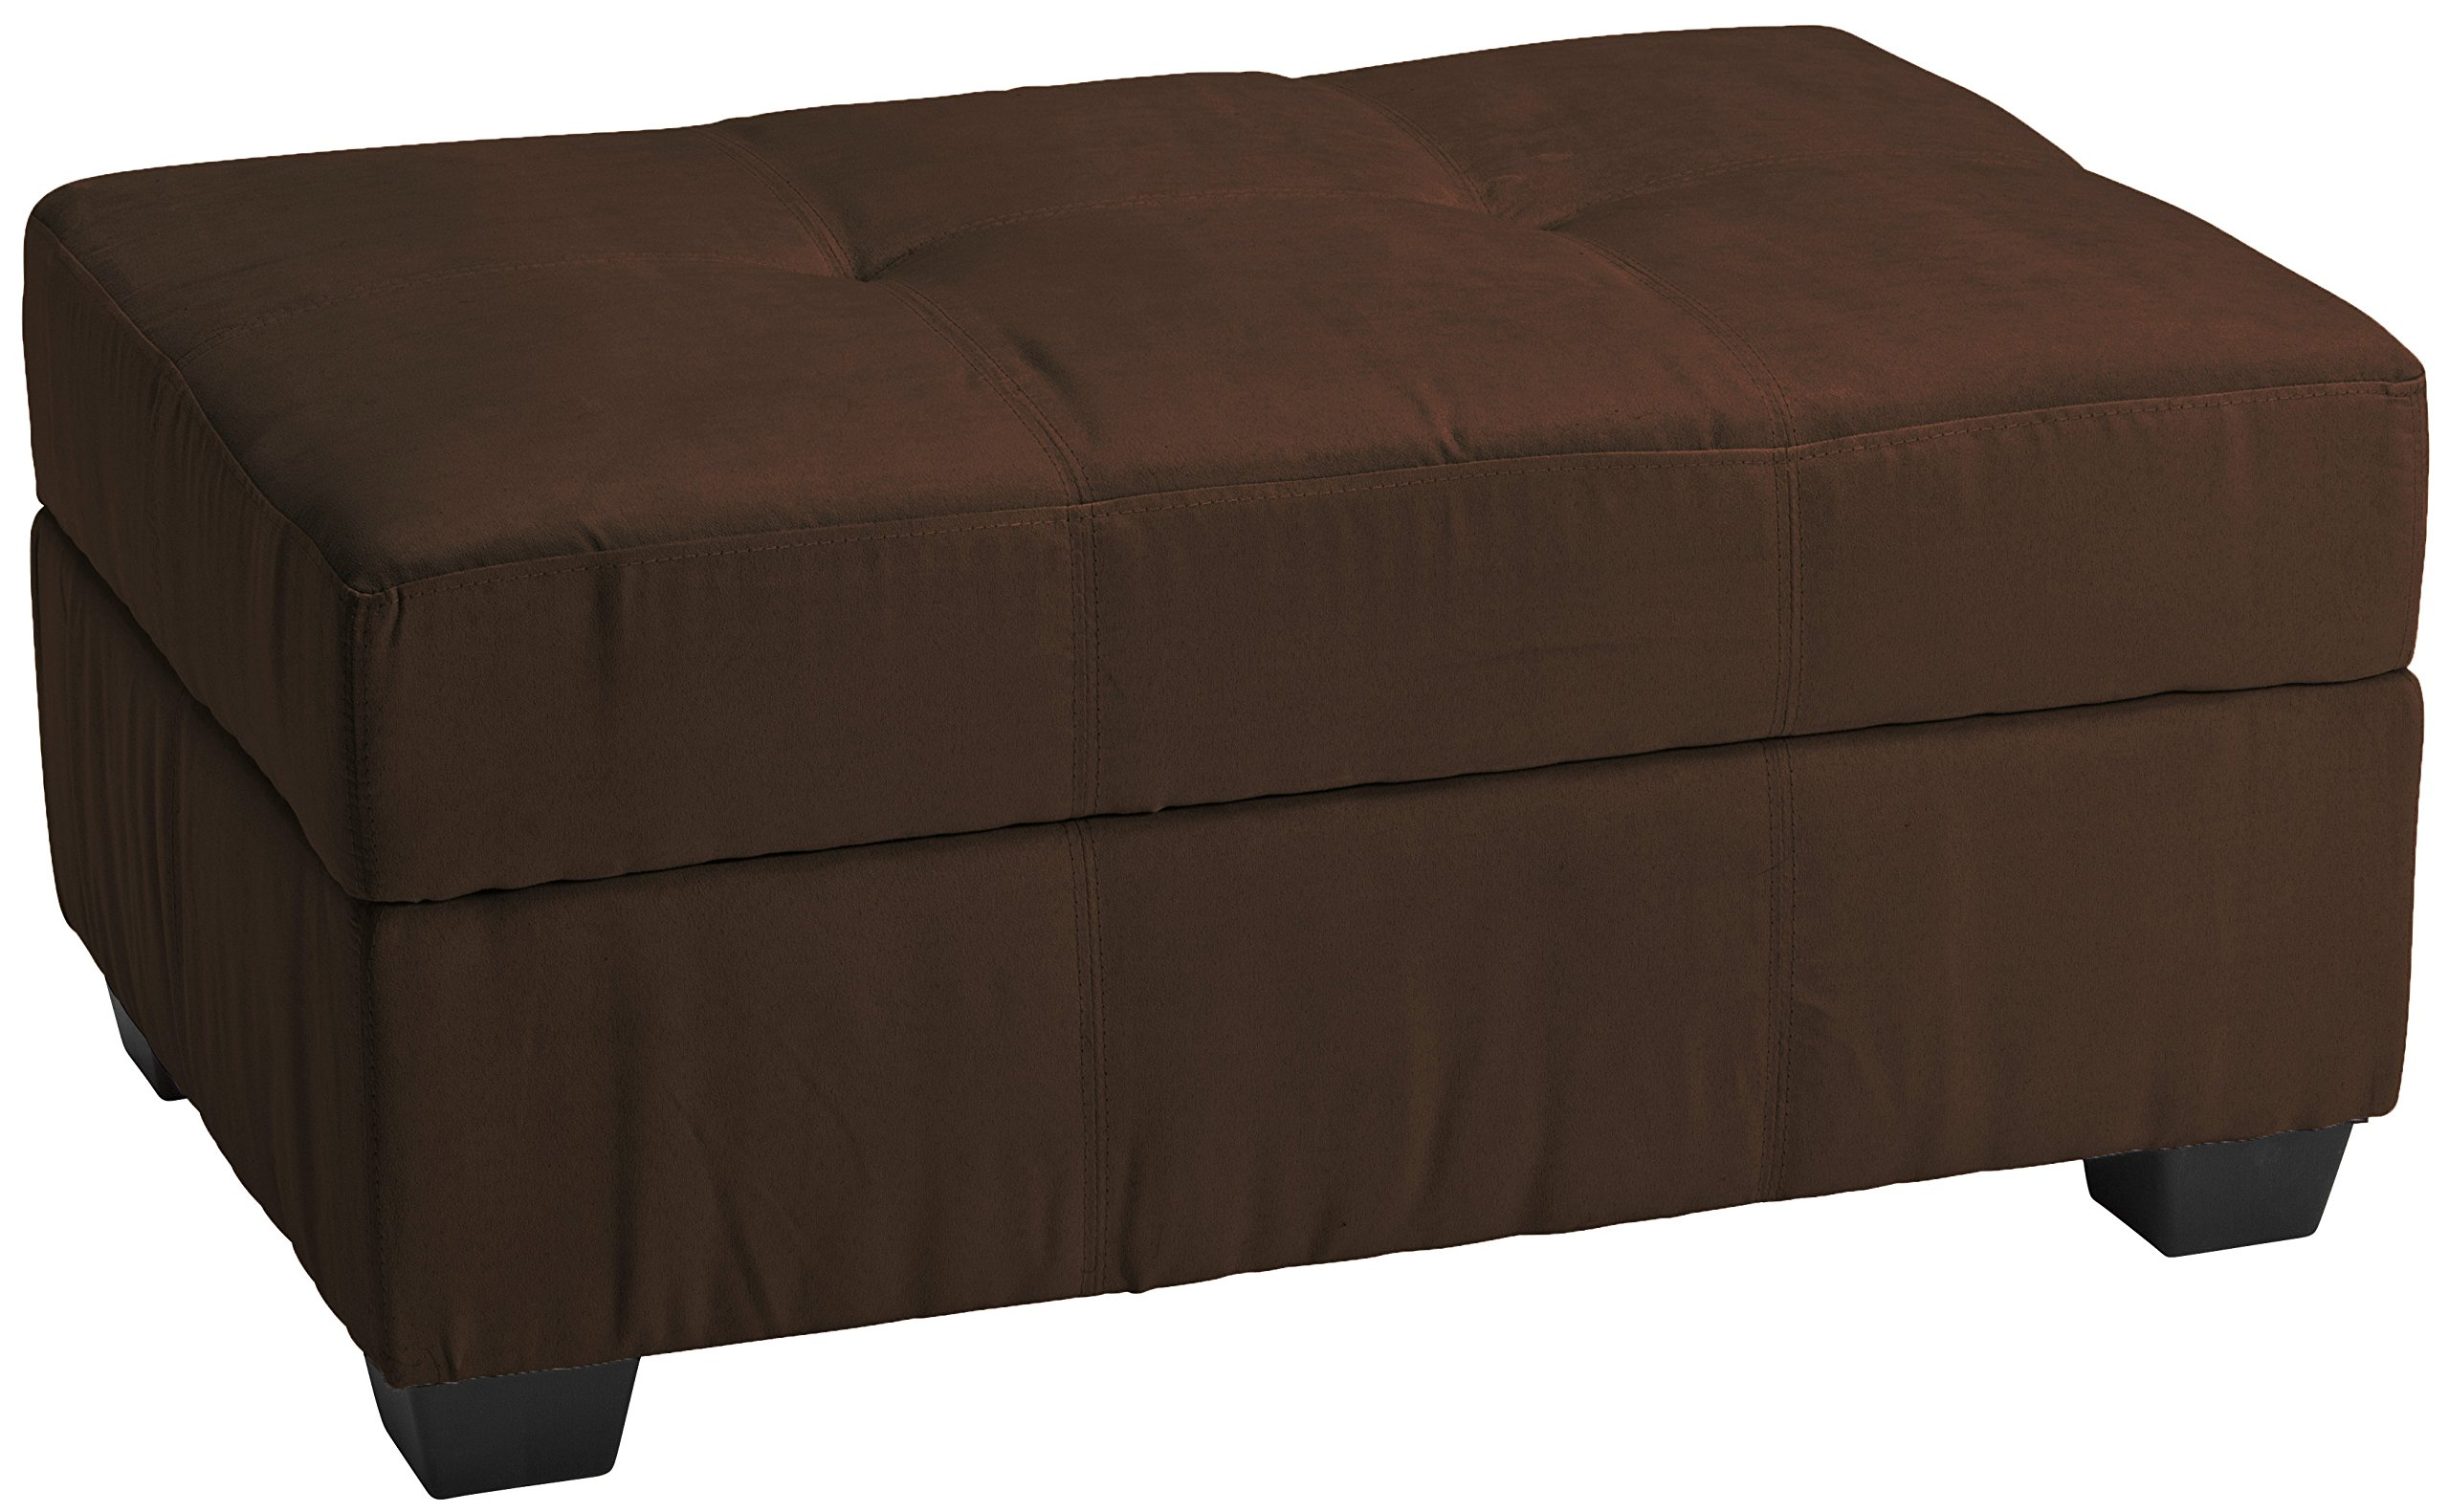 Microfiber Suede Upholstered Tufted Padded Hinged Storage Ottoman Bench, 36 by 24 by 18'', Chocolate Brown